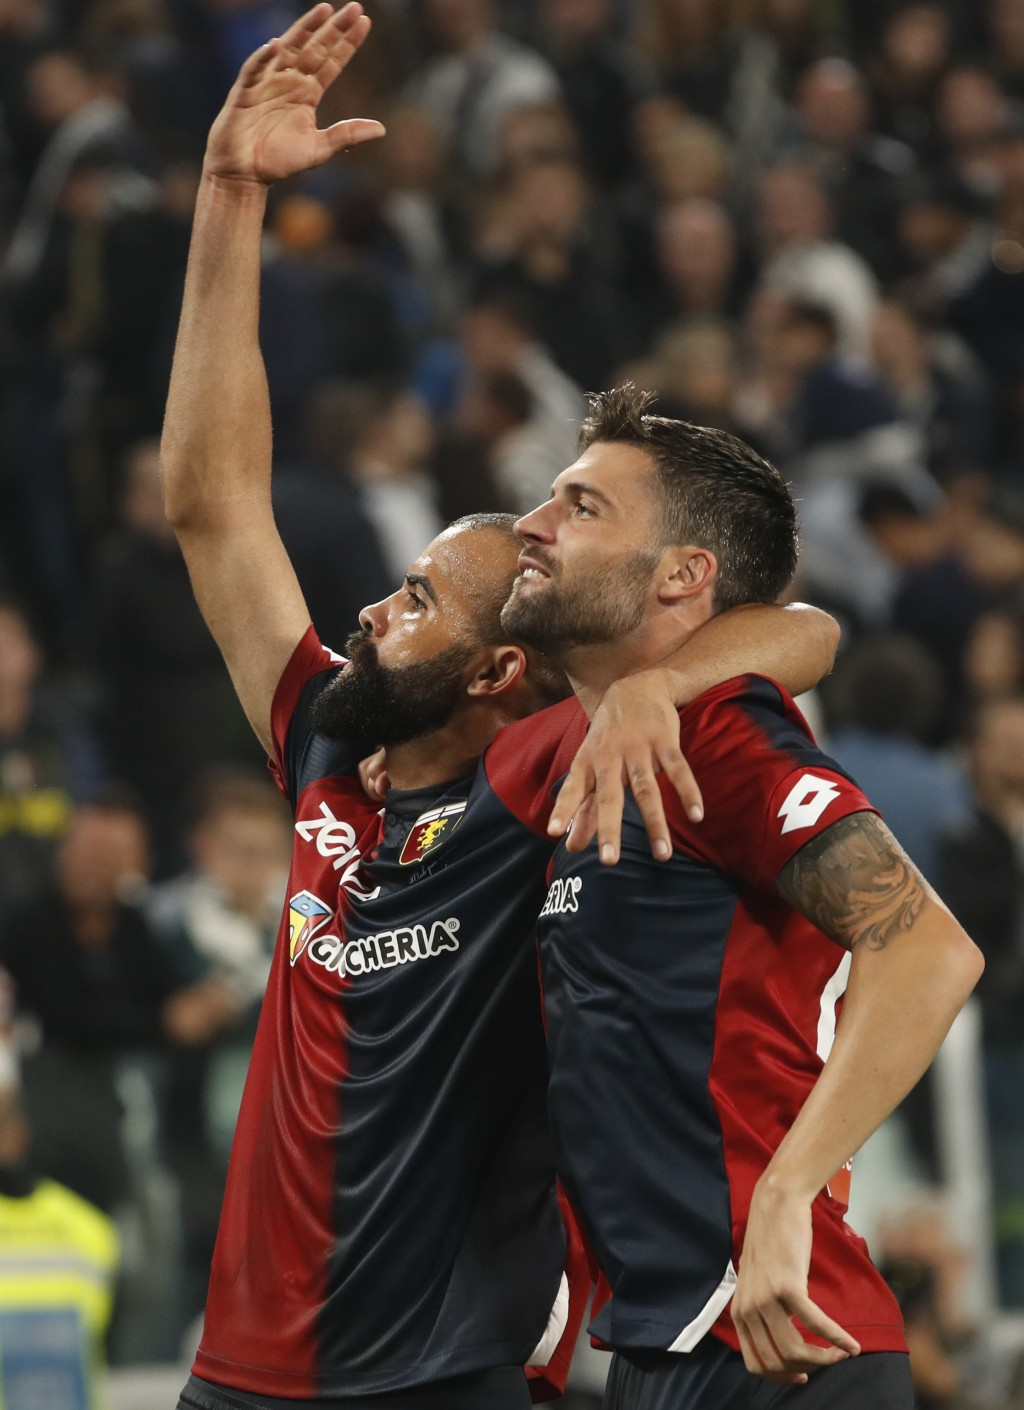 Genoa's Daniel Bessa, right, who scored the equalizer, and Genoa's Sandro celebrate at the end of an Italian Serie A soccer match between Juventus and